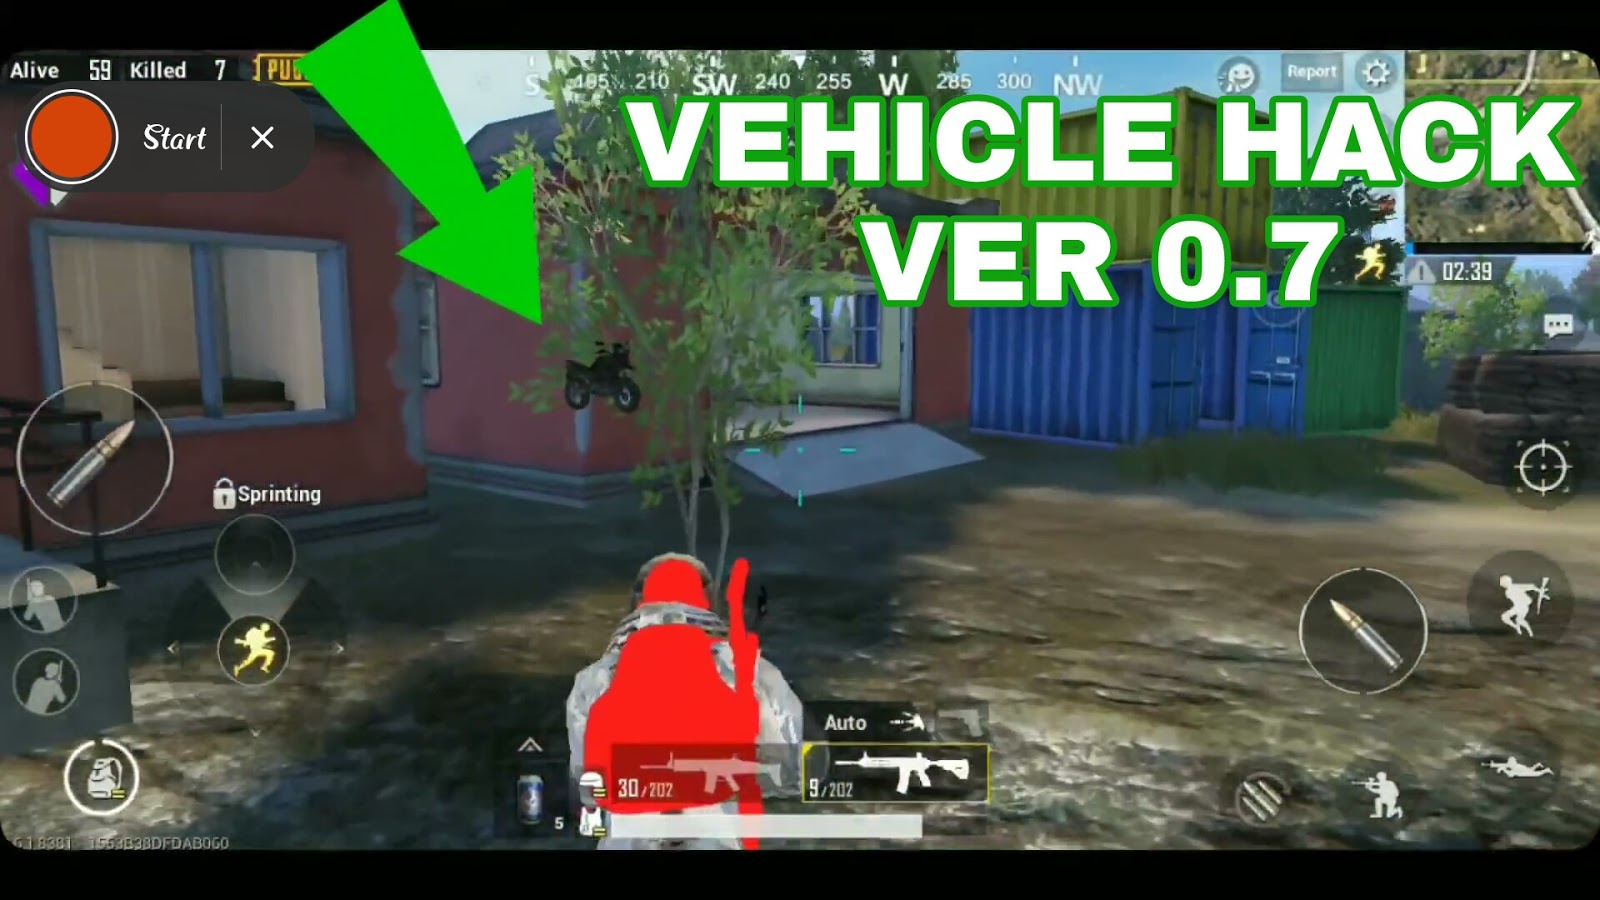 Auto Aim  Reload Fast  Aim Assist  Trigger Hack  Auto Fire  Cheat Detection Removed  Anti Ban Pubg Mobile New Hack High Jumpcar Hack